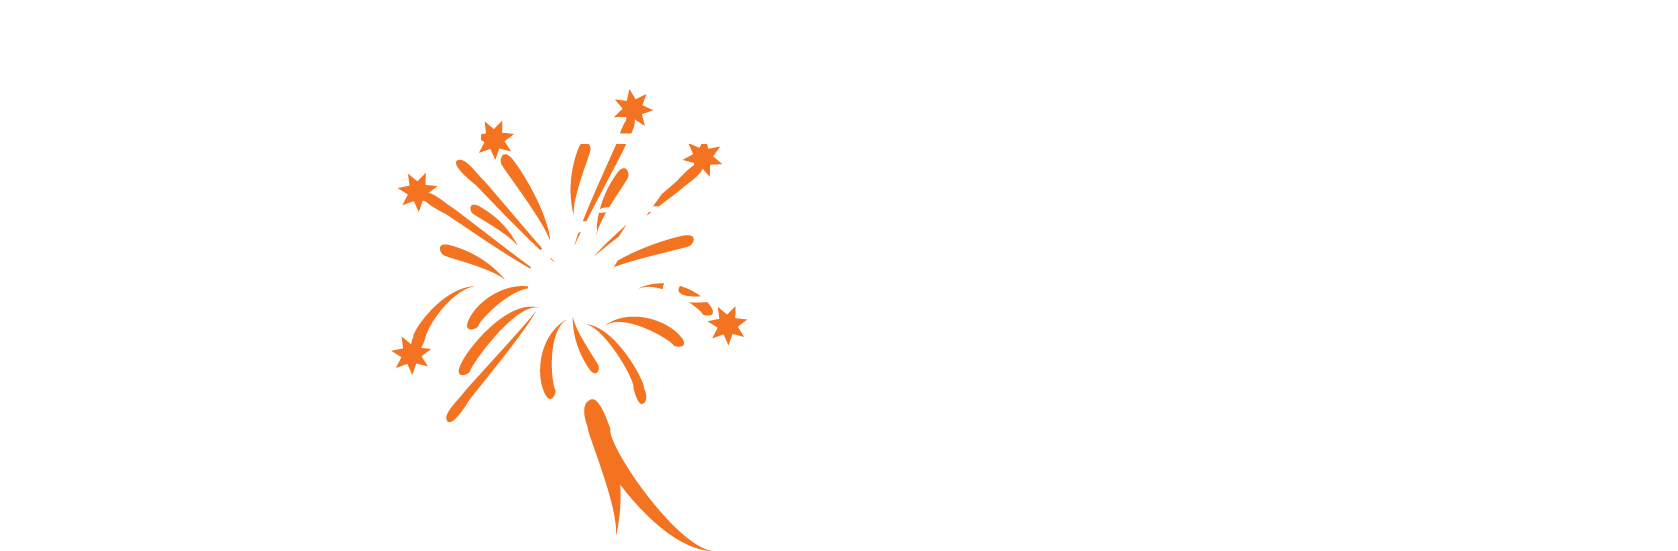 The Freeman Stage at Bayside